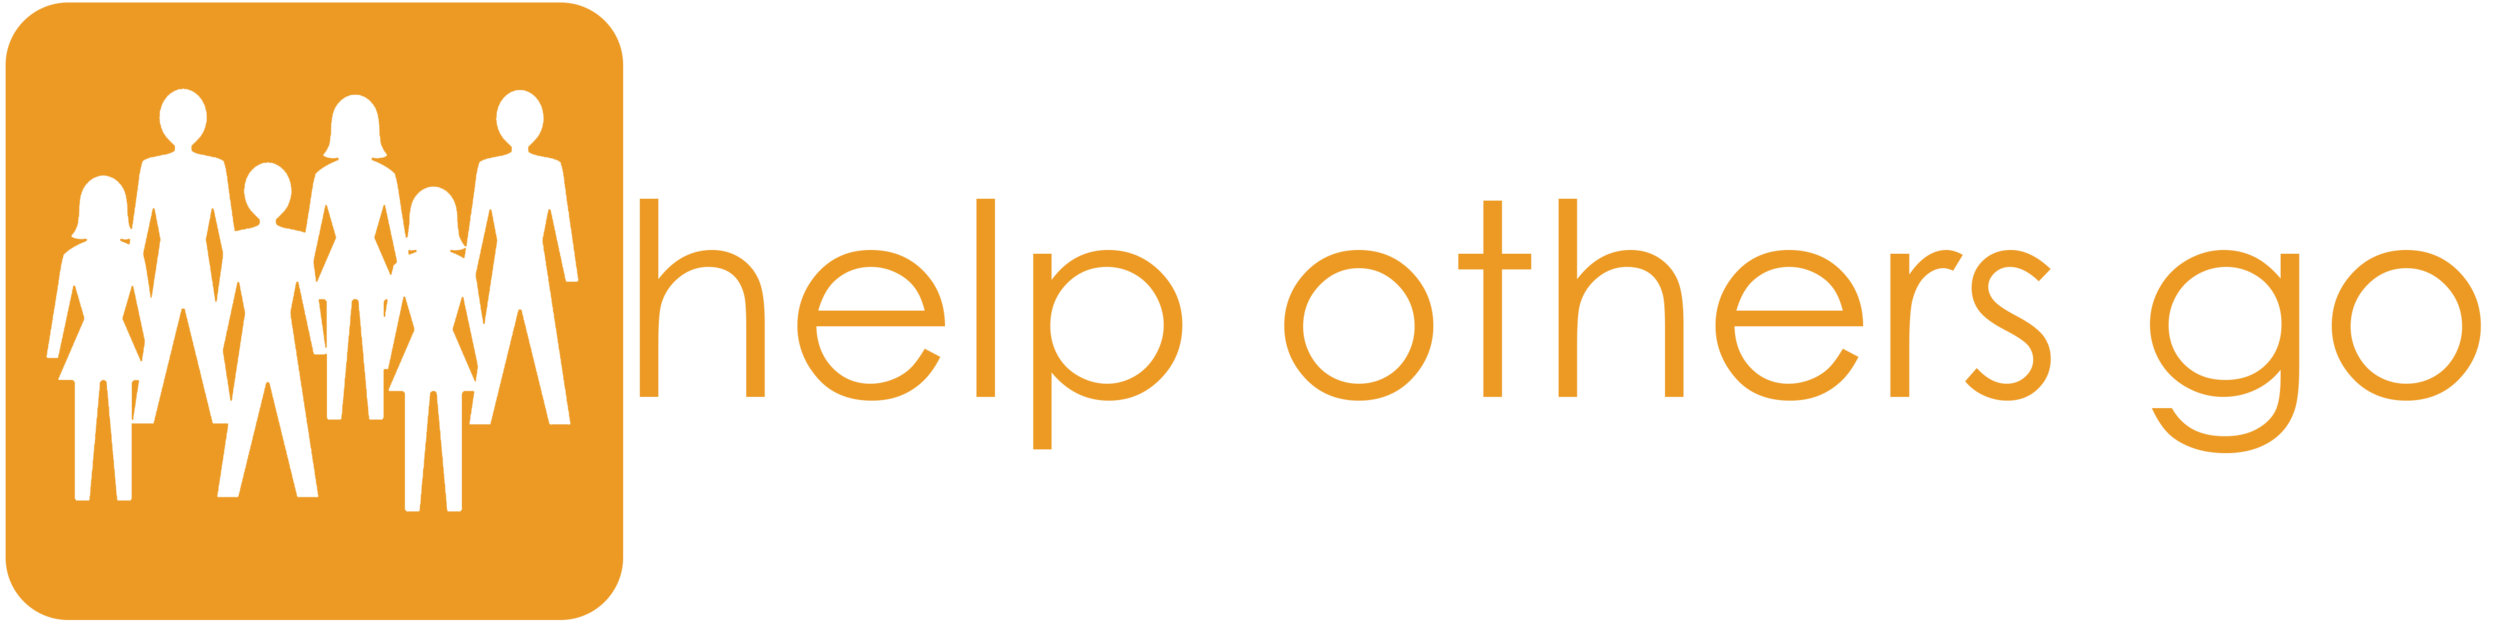 help others go tab icon o.png